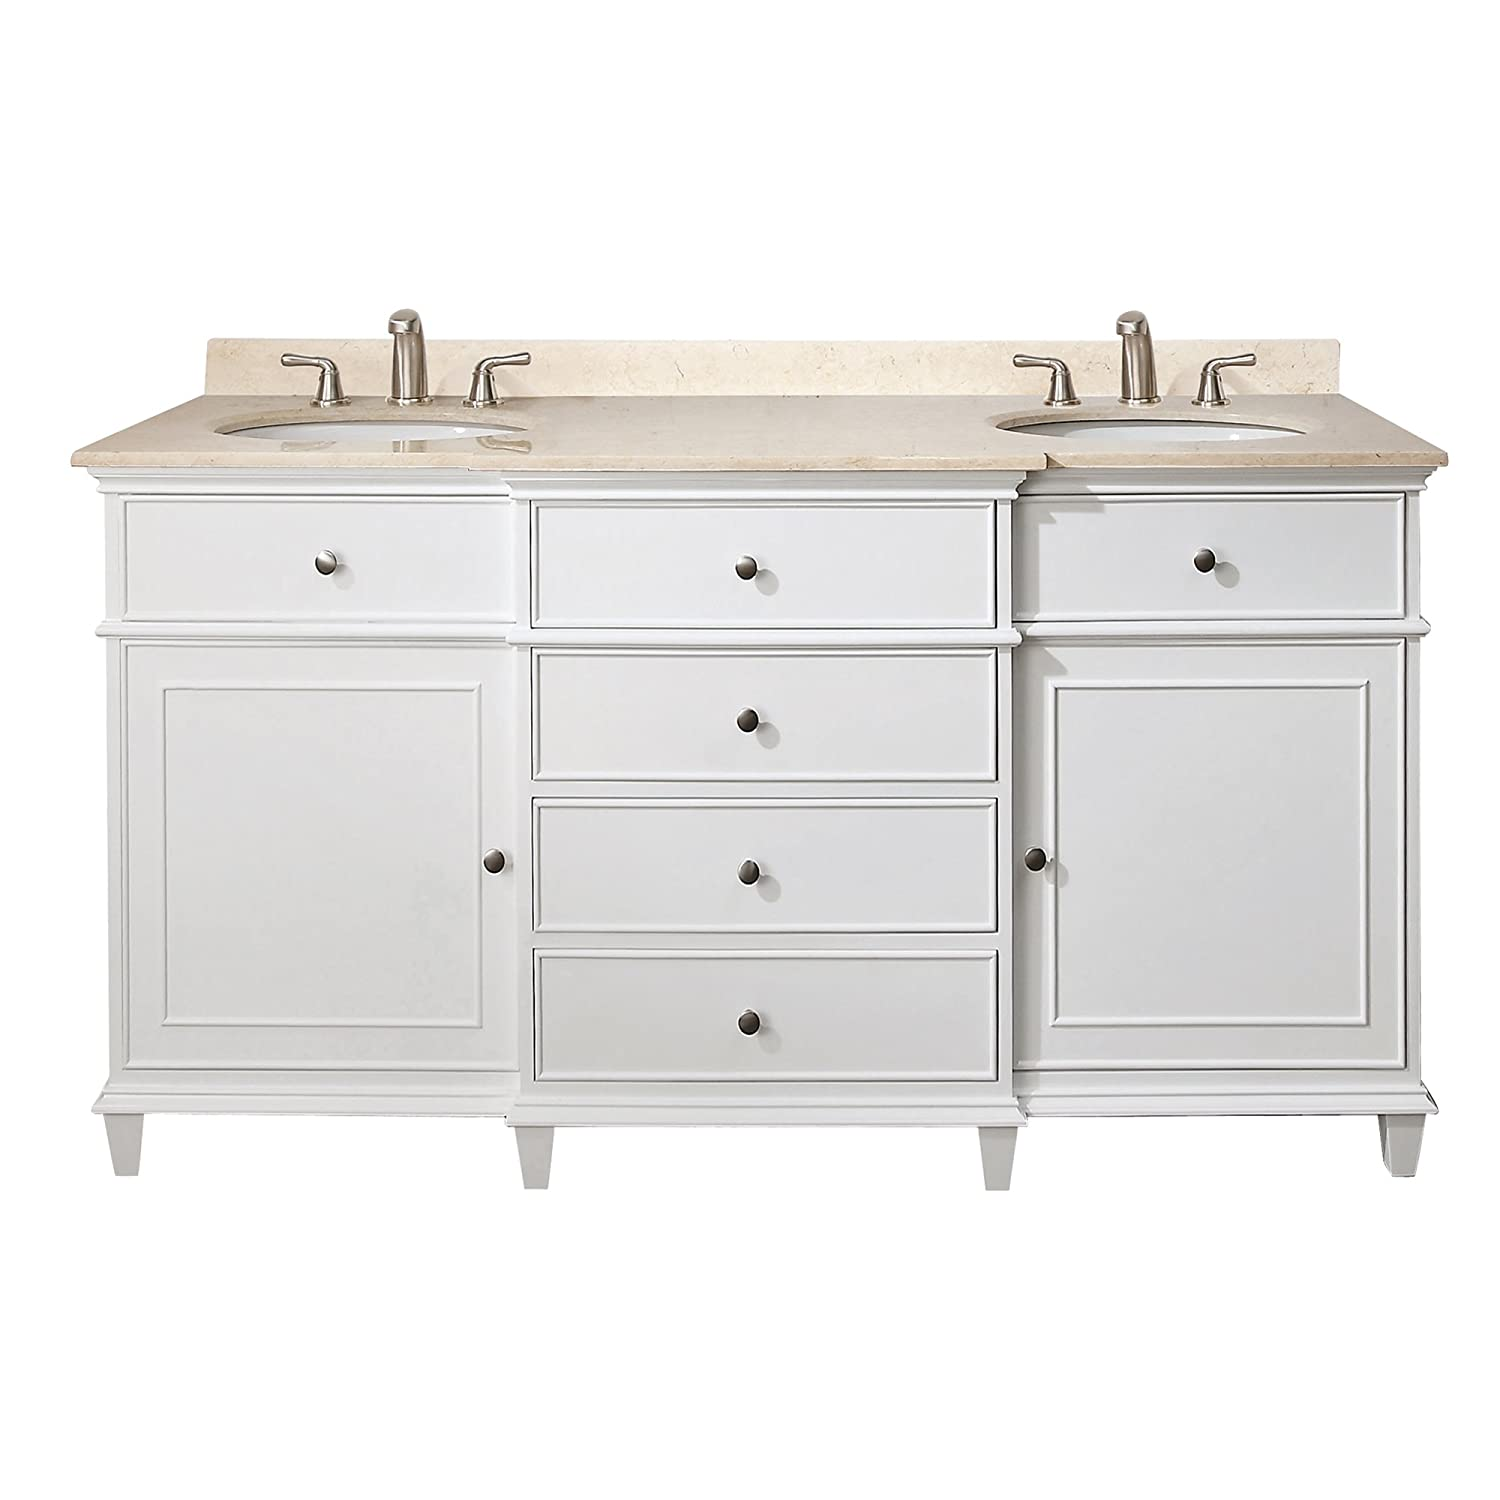 Avanity Windsor 60 in. Vanity with Carrera White Marble top and Dual Undermount Sinks in White finish chic